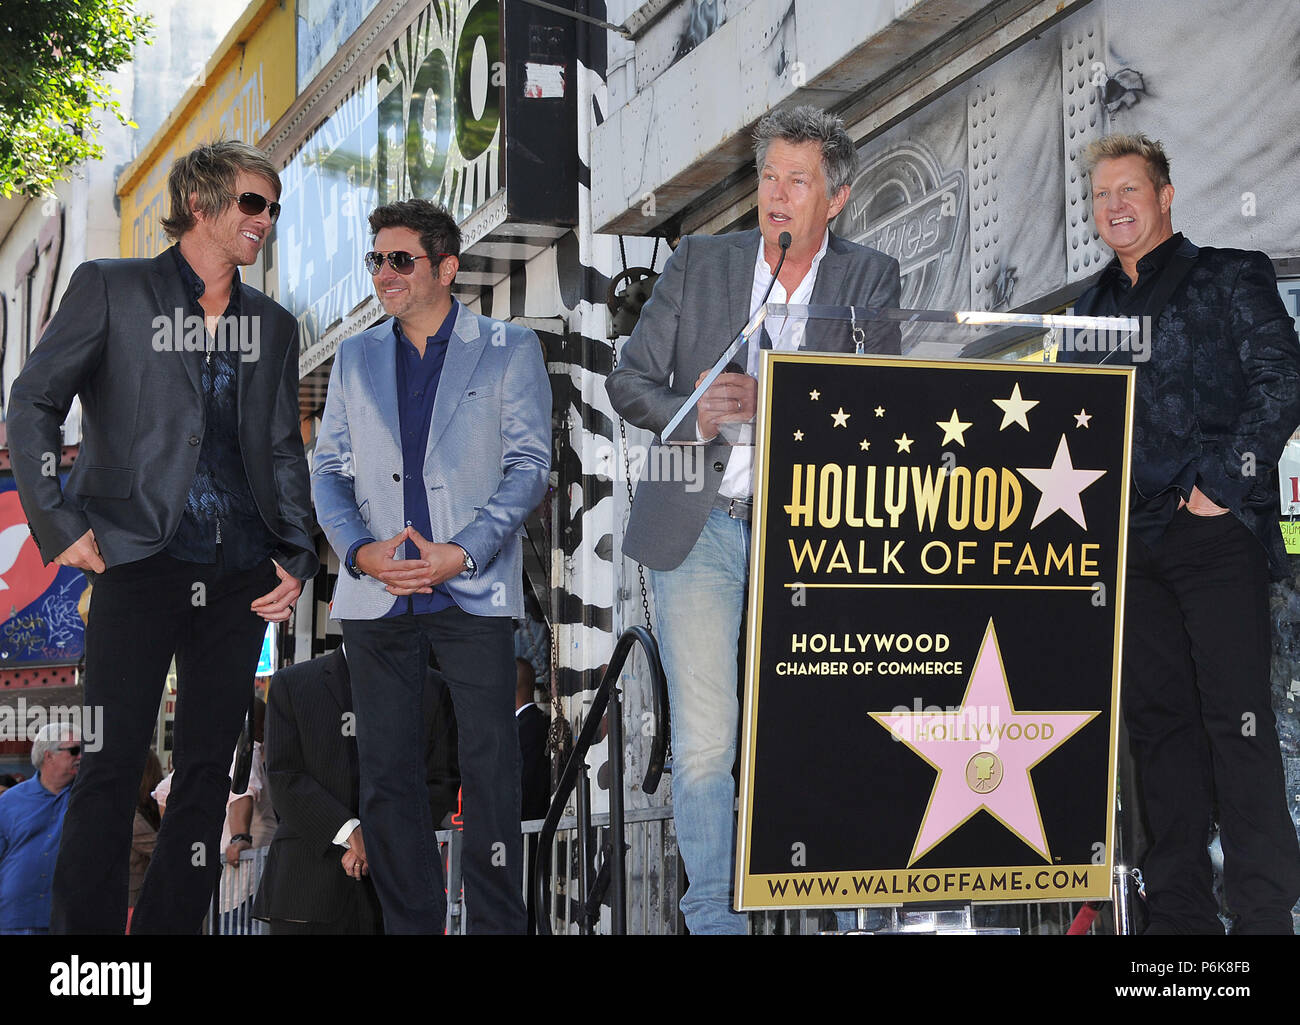 Gary Levox Lead Vocals Jay Demarcus Bassist And Background Vocals Joe Don Rooney Rascal Flatts Honored With A Star On The Hollywood Walk Of Fame In Los Angeles Rascal Flatts Star 19